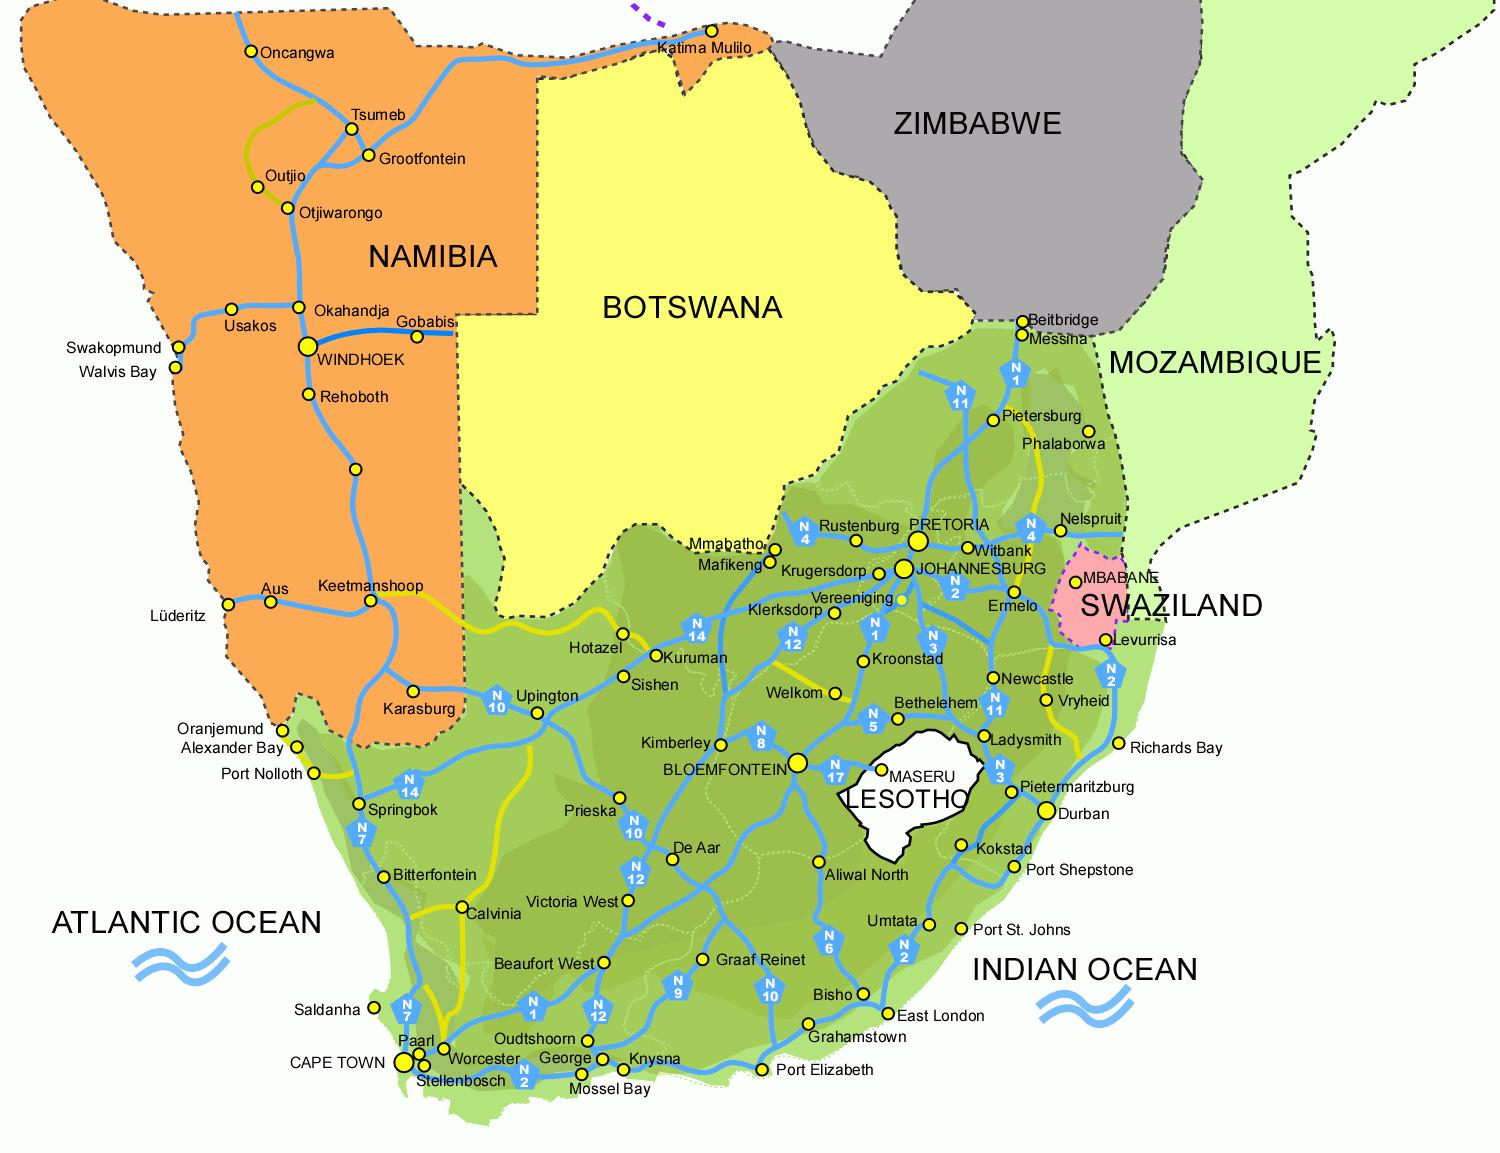 Lesotho south africa map   Map of Lesotho and south africa